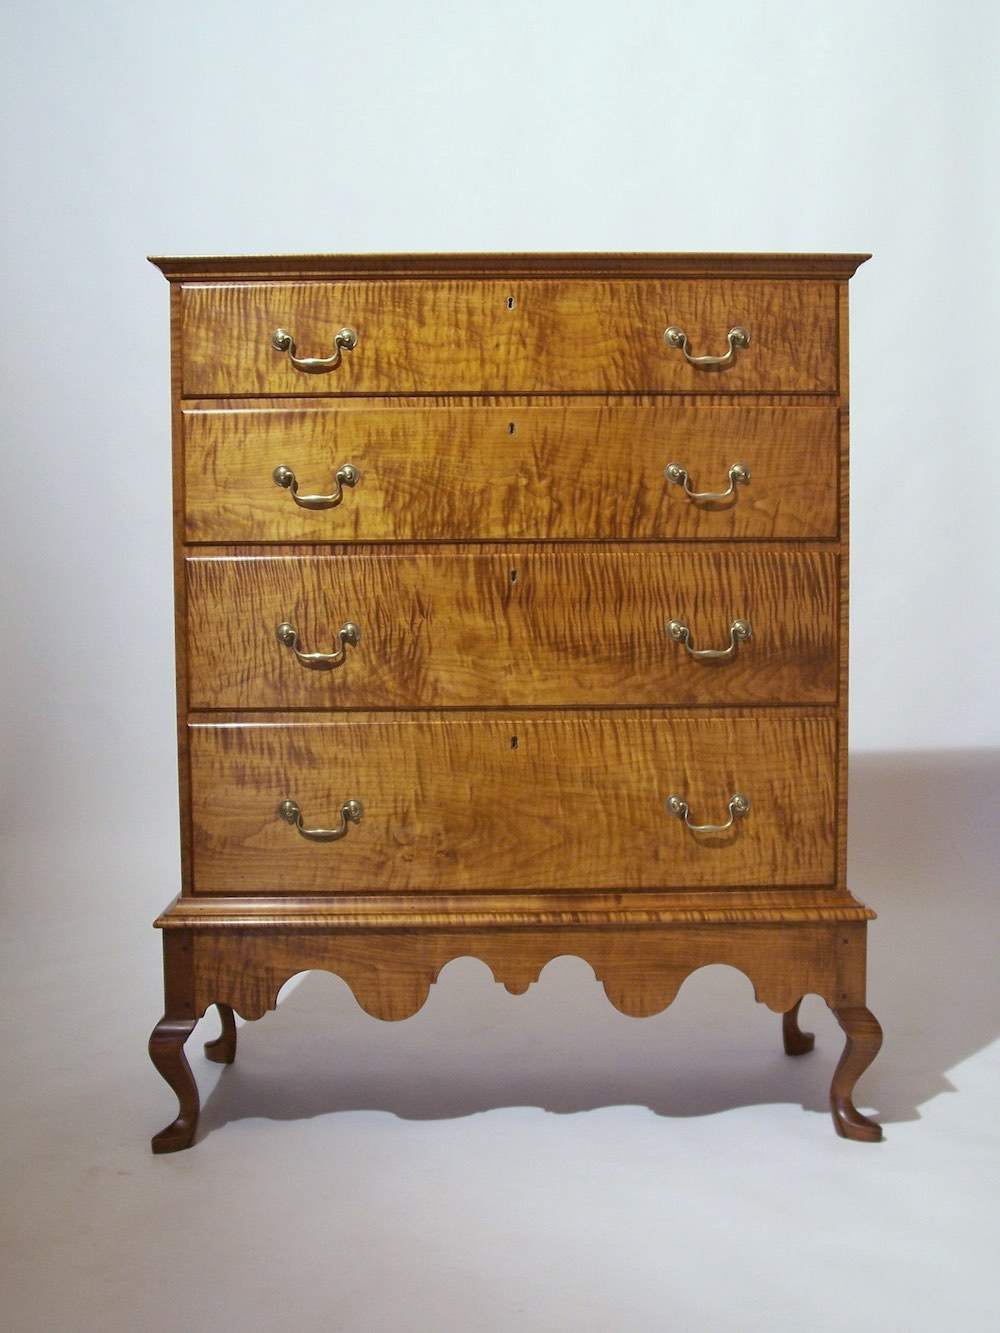 Queen Anne chest-on-frame